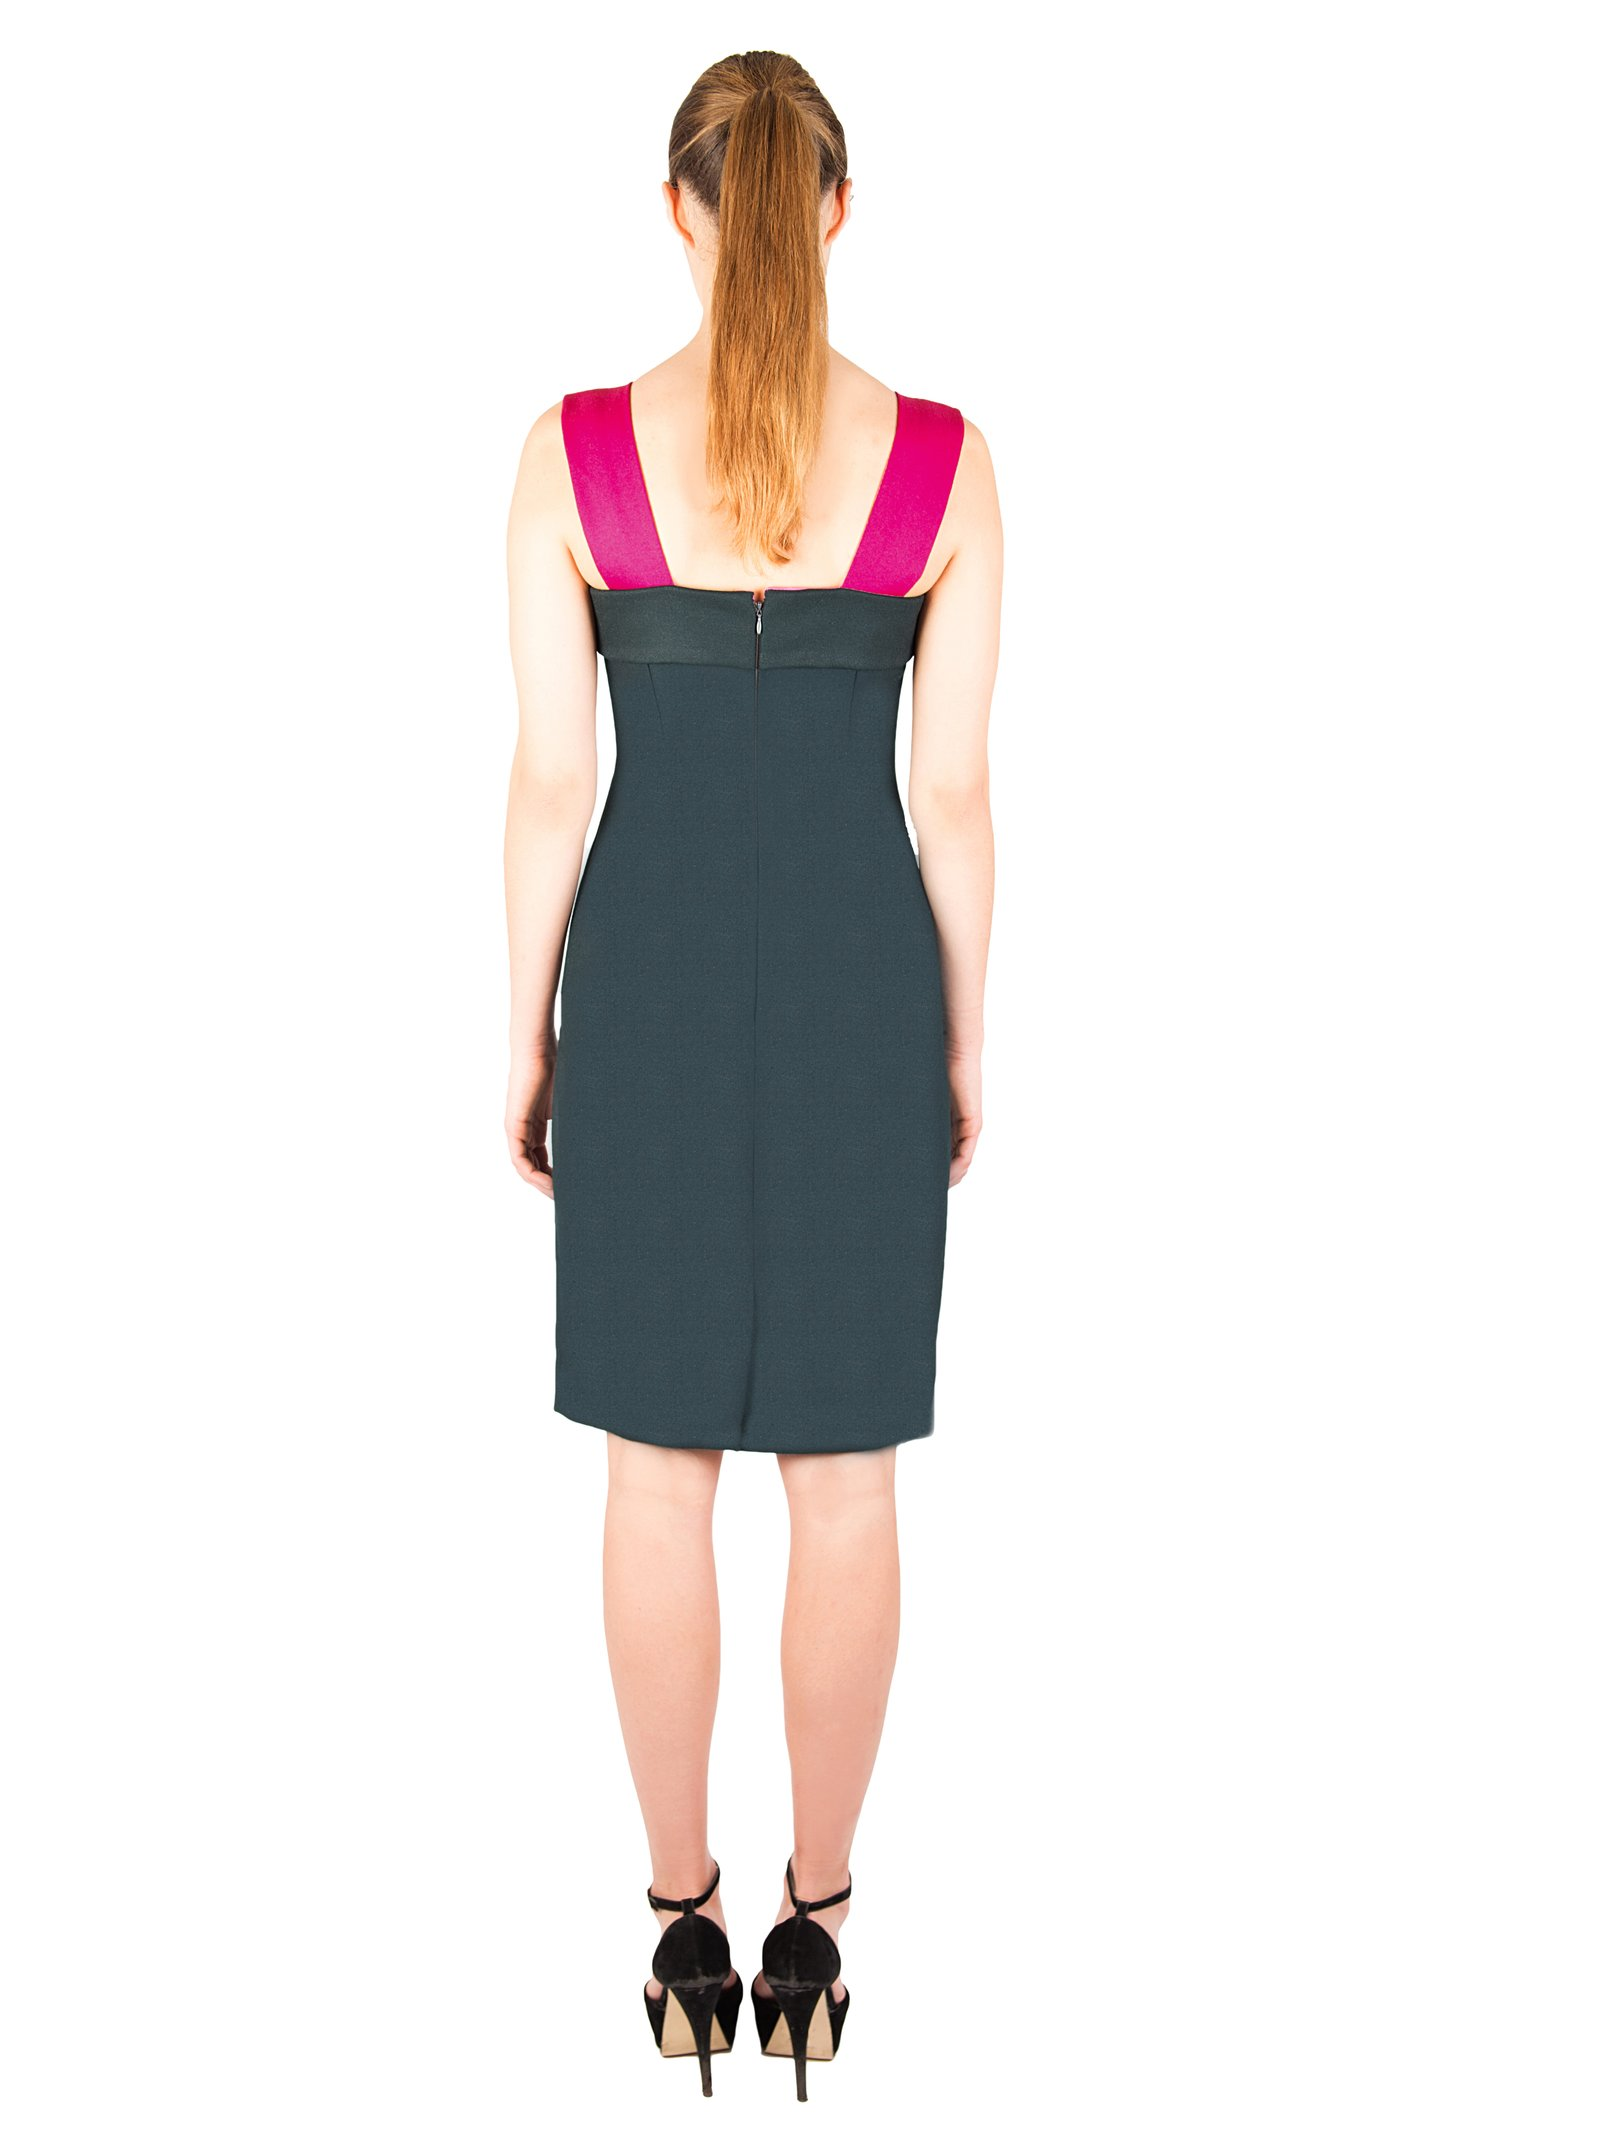 LIZA VETA Merino Wool Pencil Dress